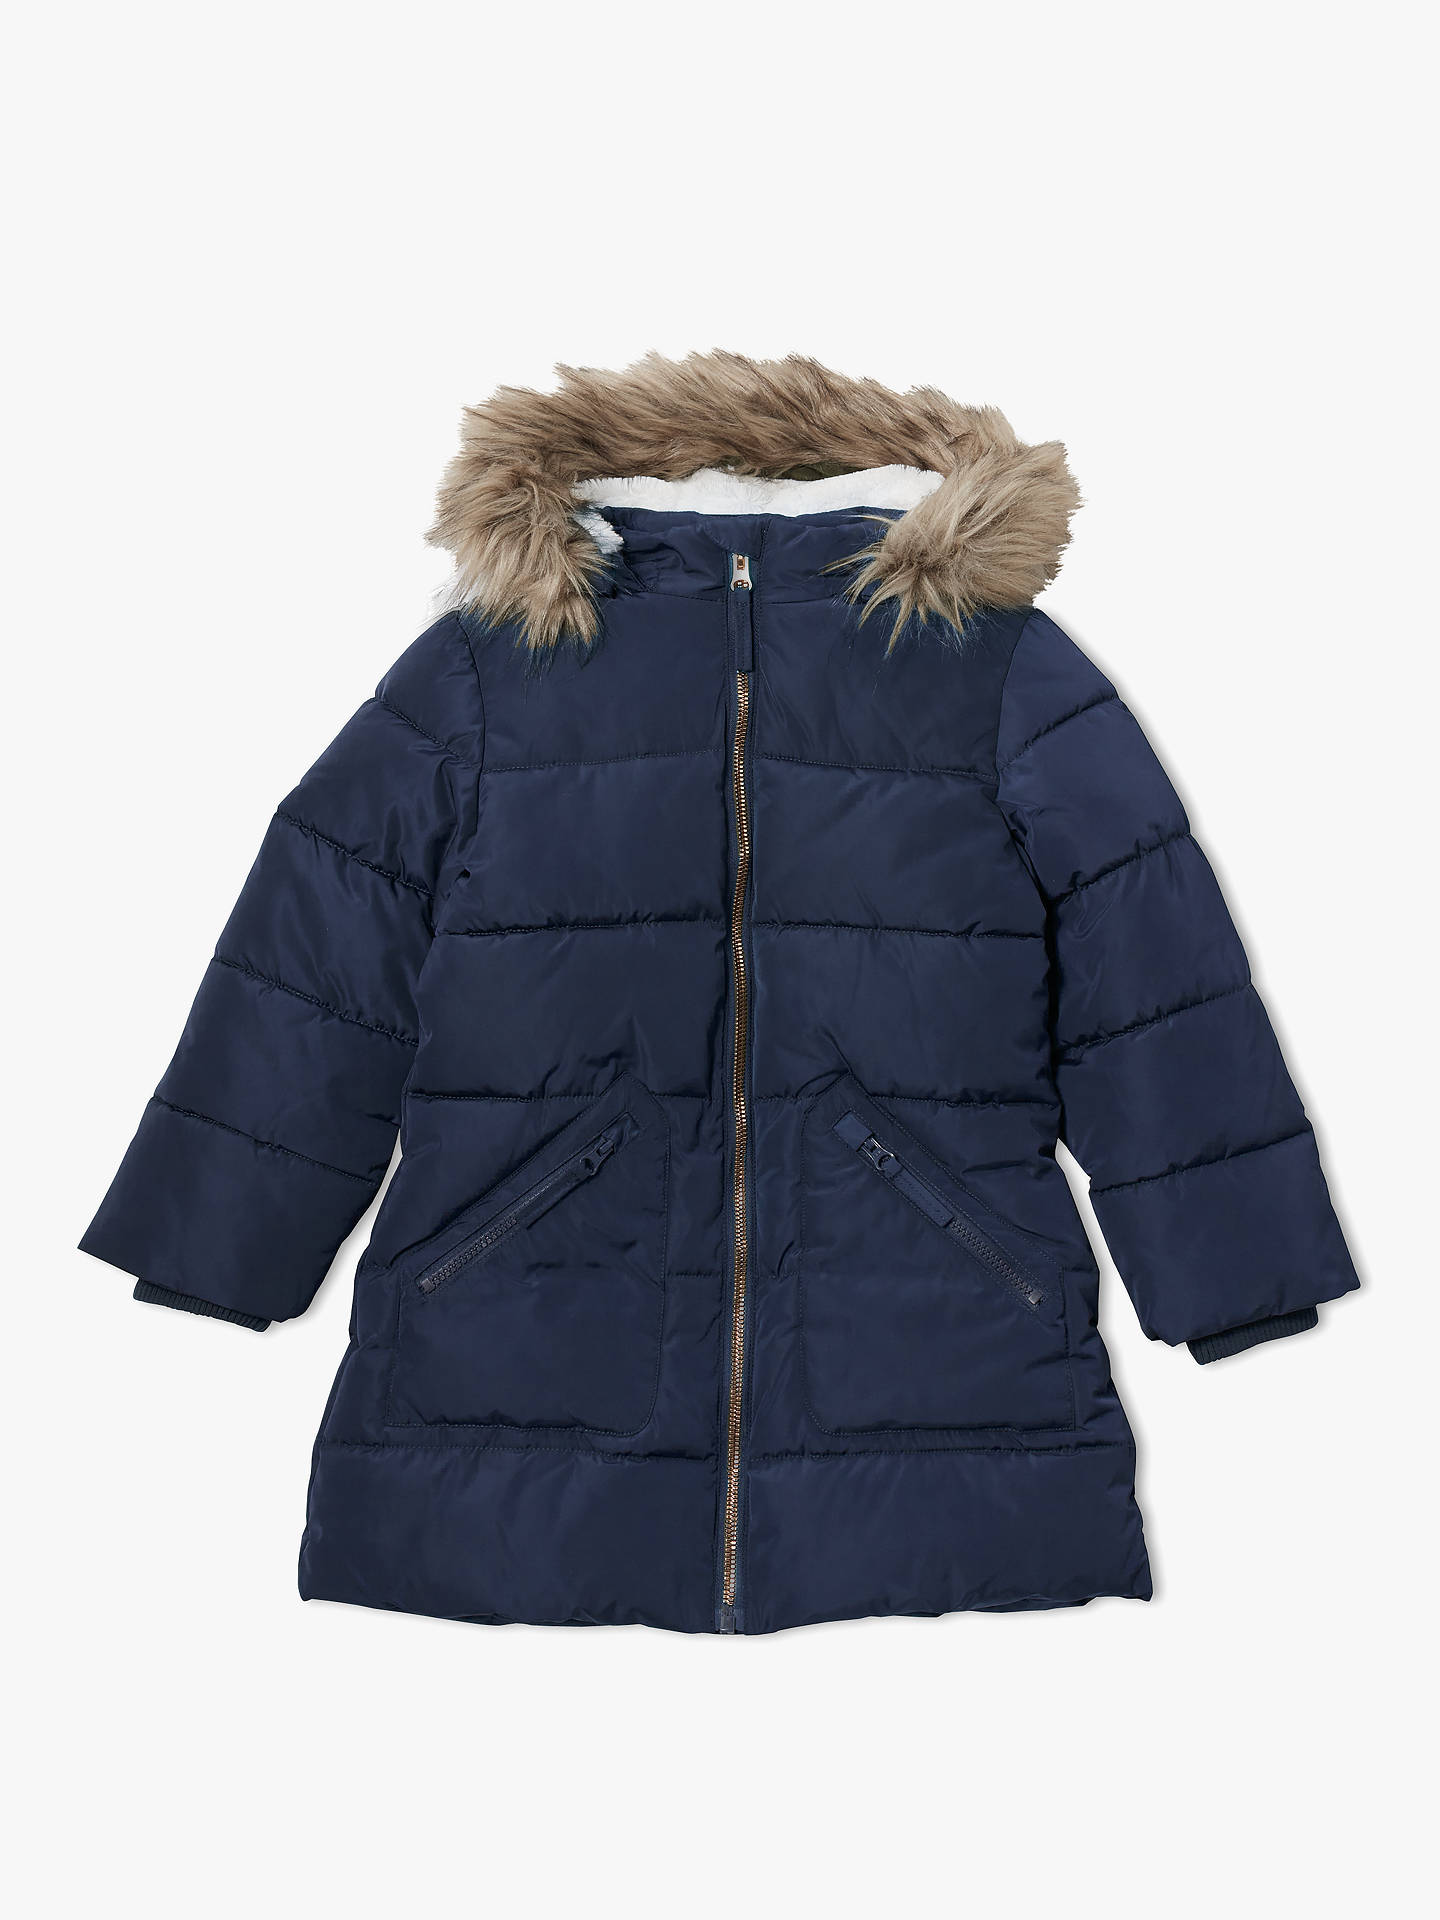 BuyJohn Lewis & Partners Girls' Padded Coat, Navy, 2 years Online at johnlewis.com